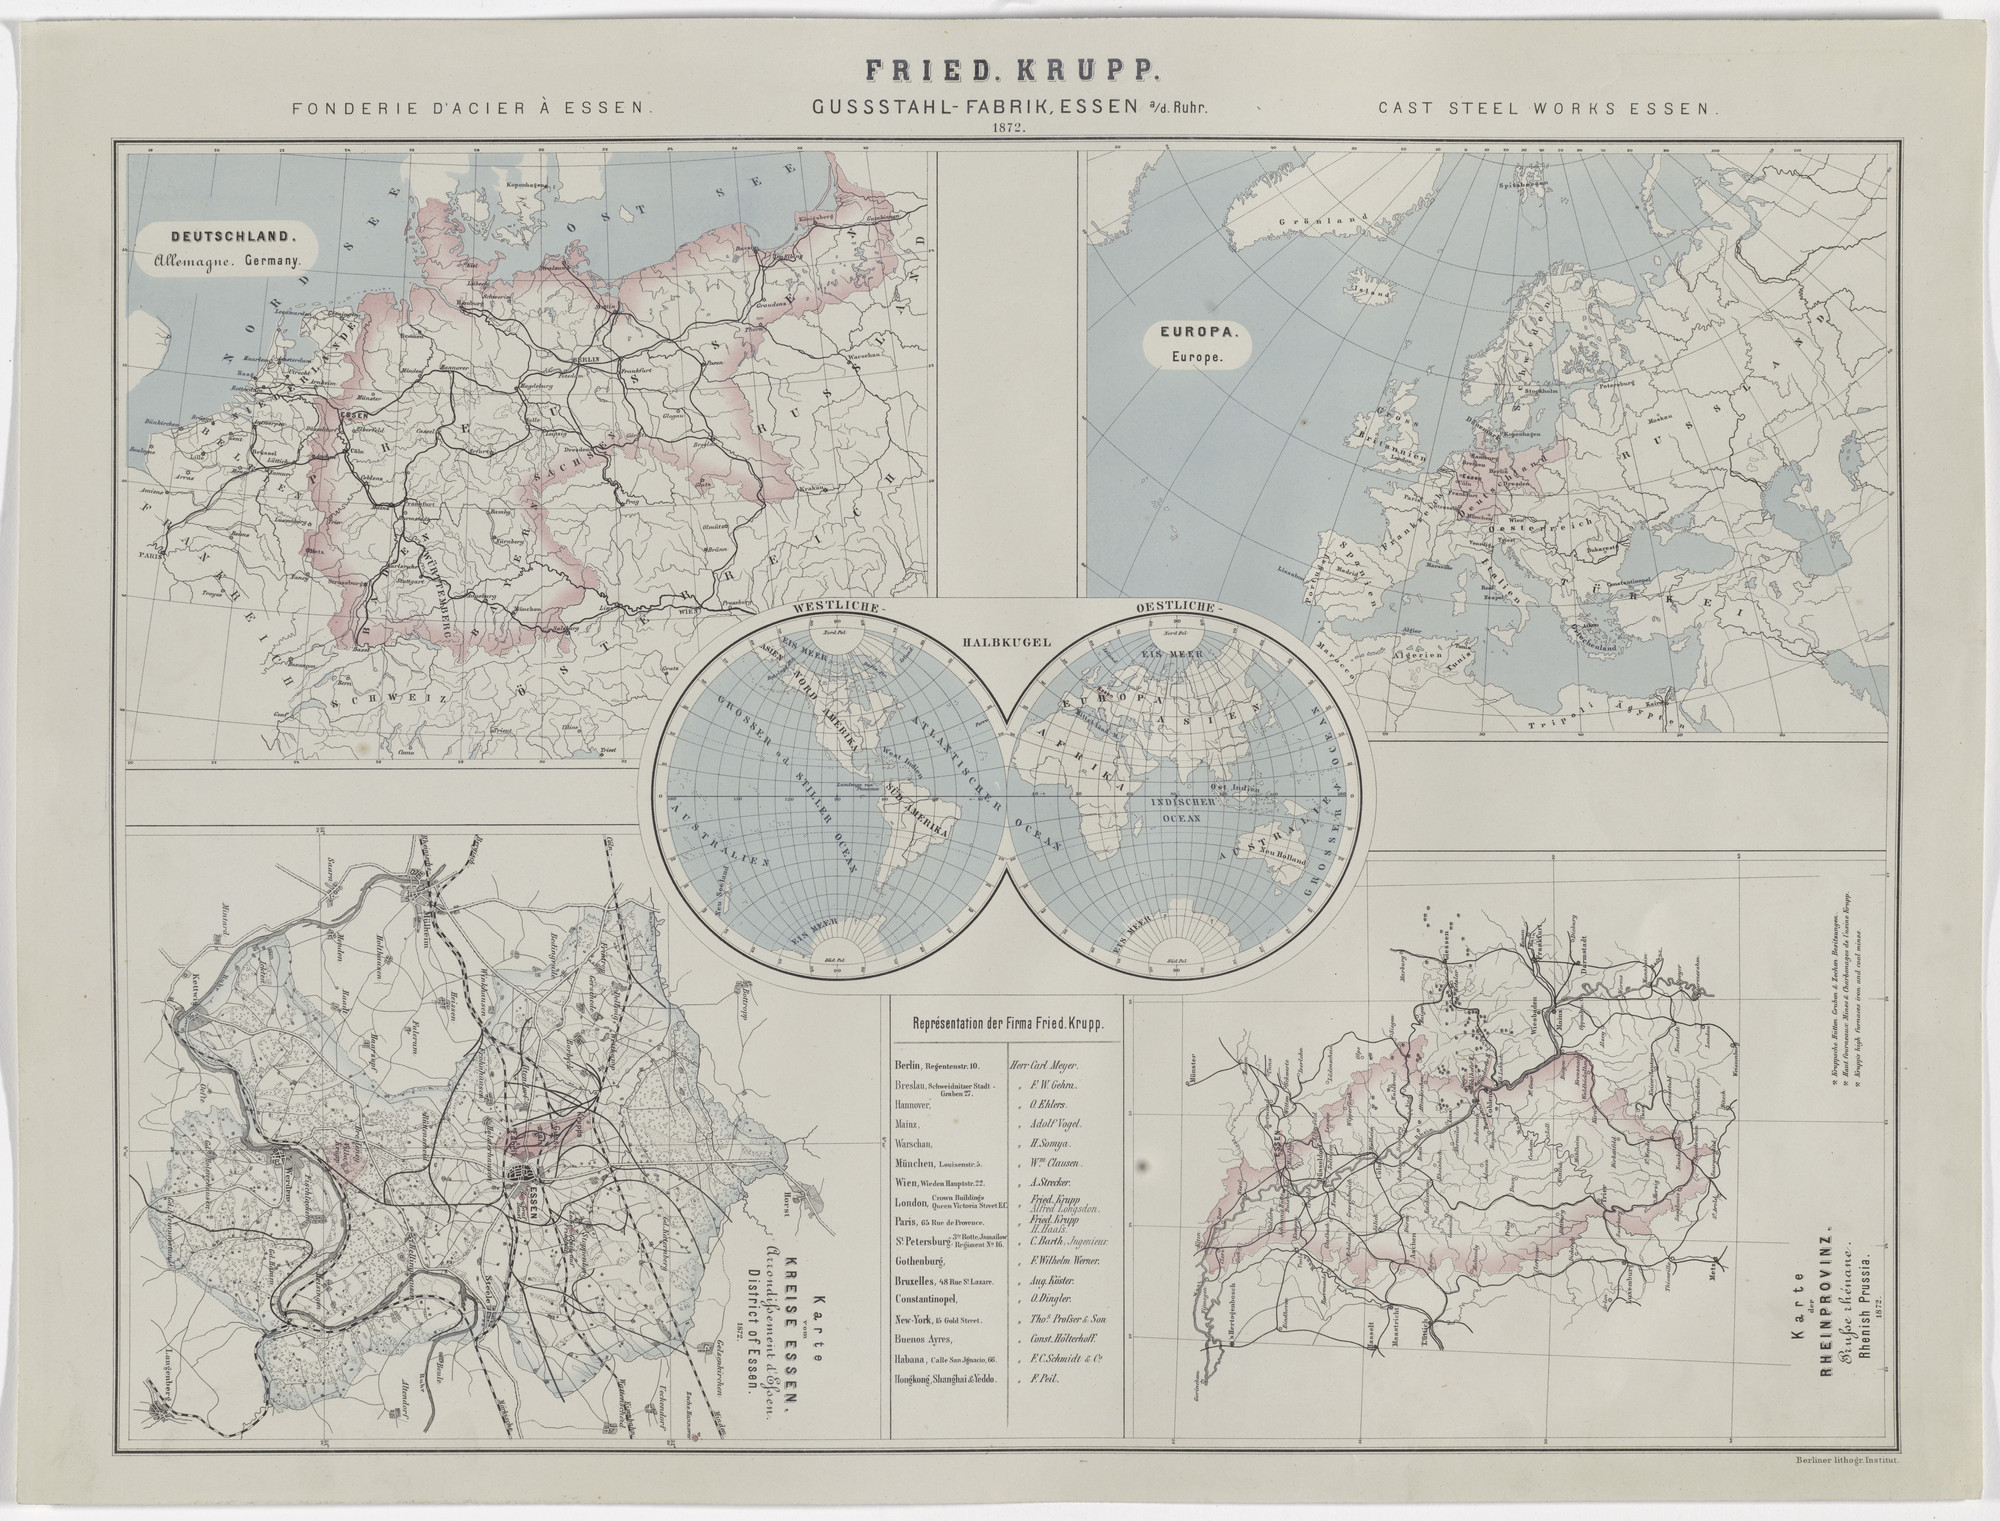 Hugo van Werden. Map of Friedrich Krupp Cast Steel Works, Essen. 1872